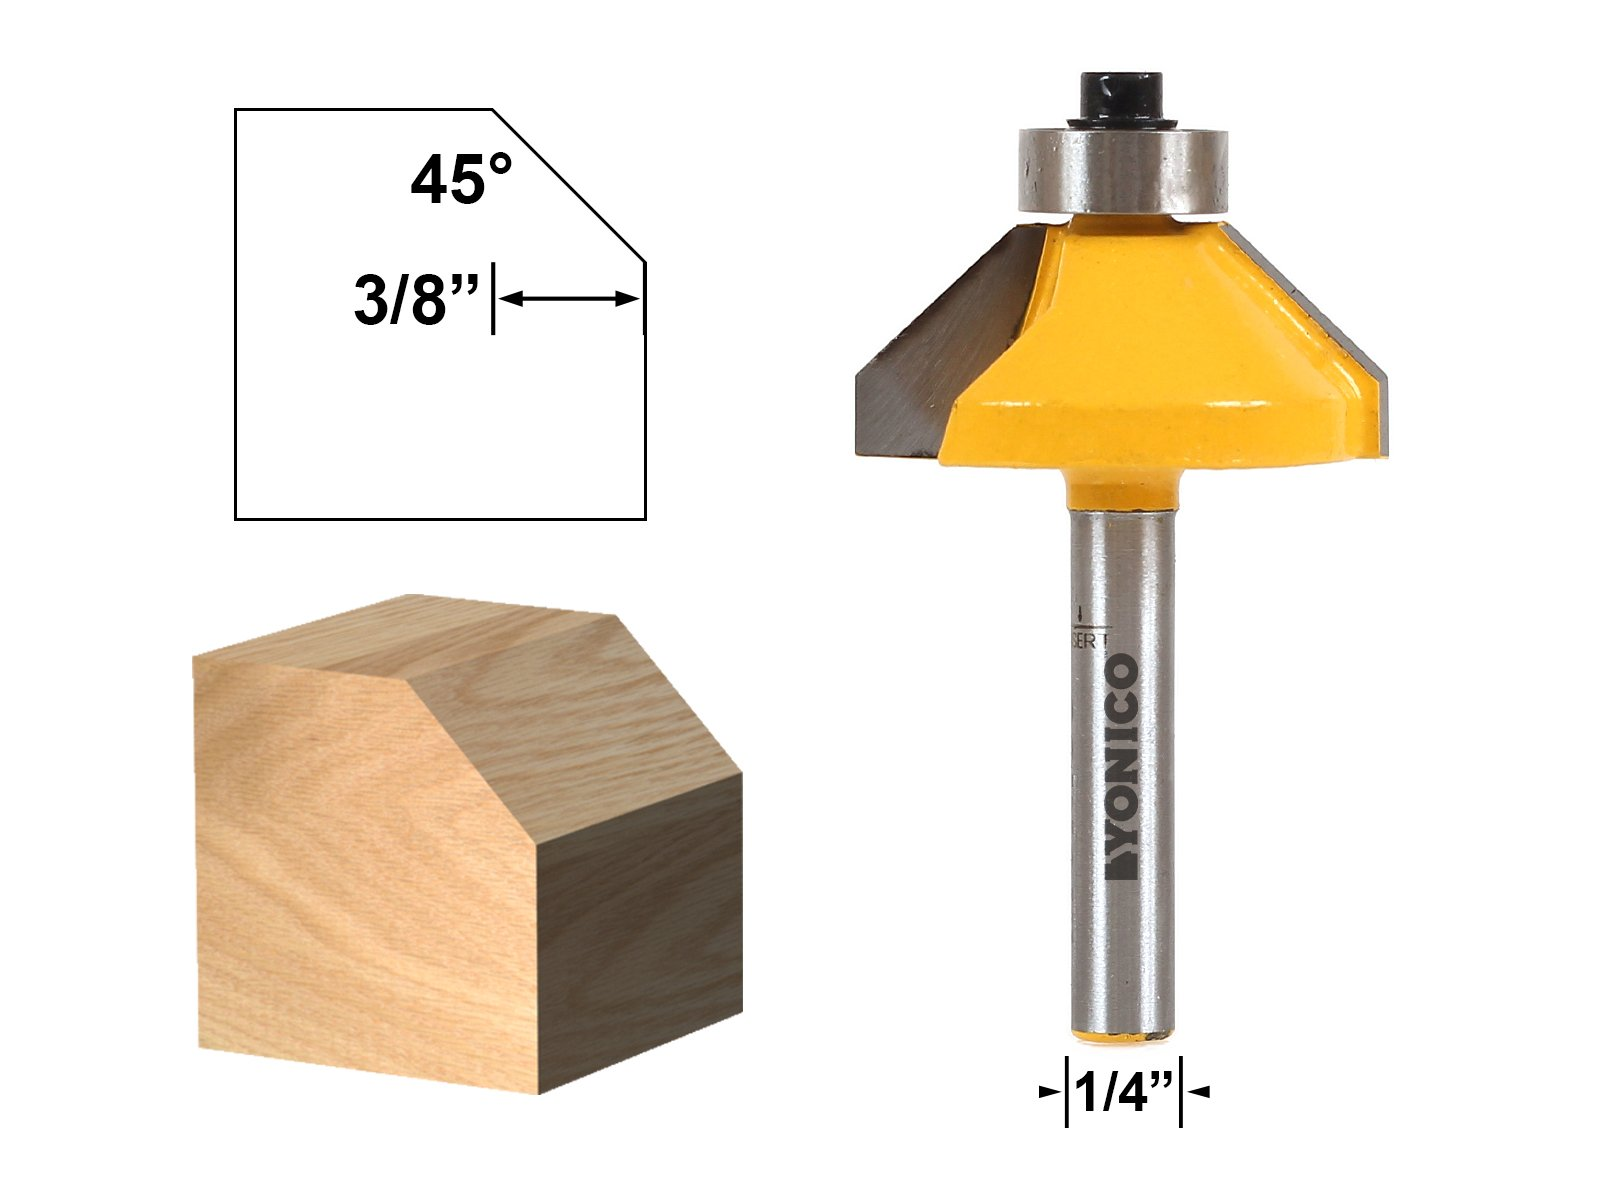 Yonico 13105q 45-degree Chamfer Edge Forming Router Bit with 1/4'' Shank